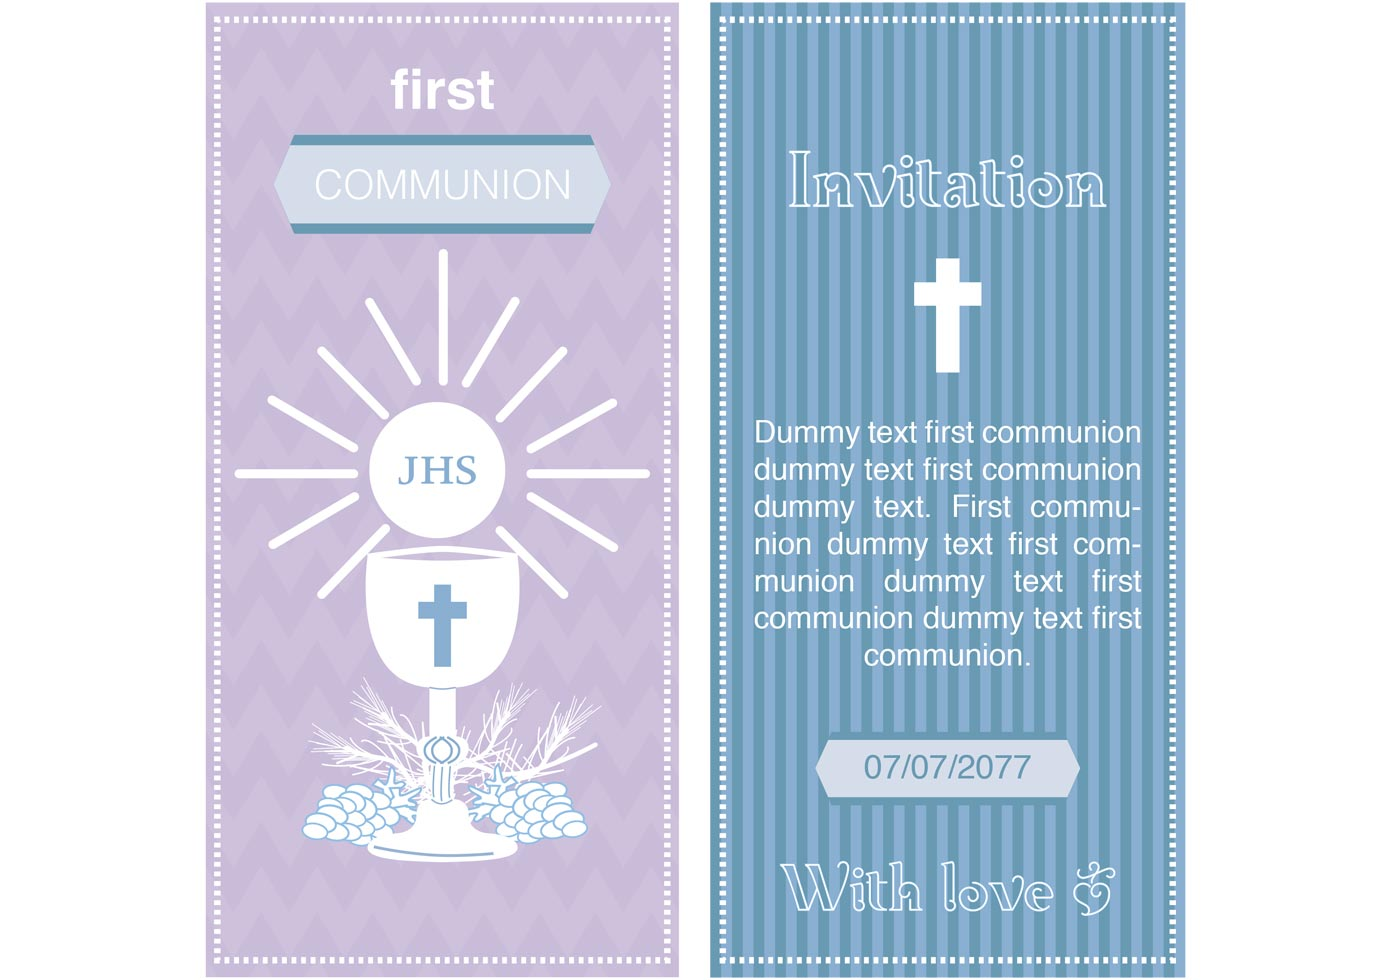 First communion invitation vectors download free vector art first communion invitation vectors download free vector art stock graphics images stopboris Images